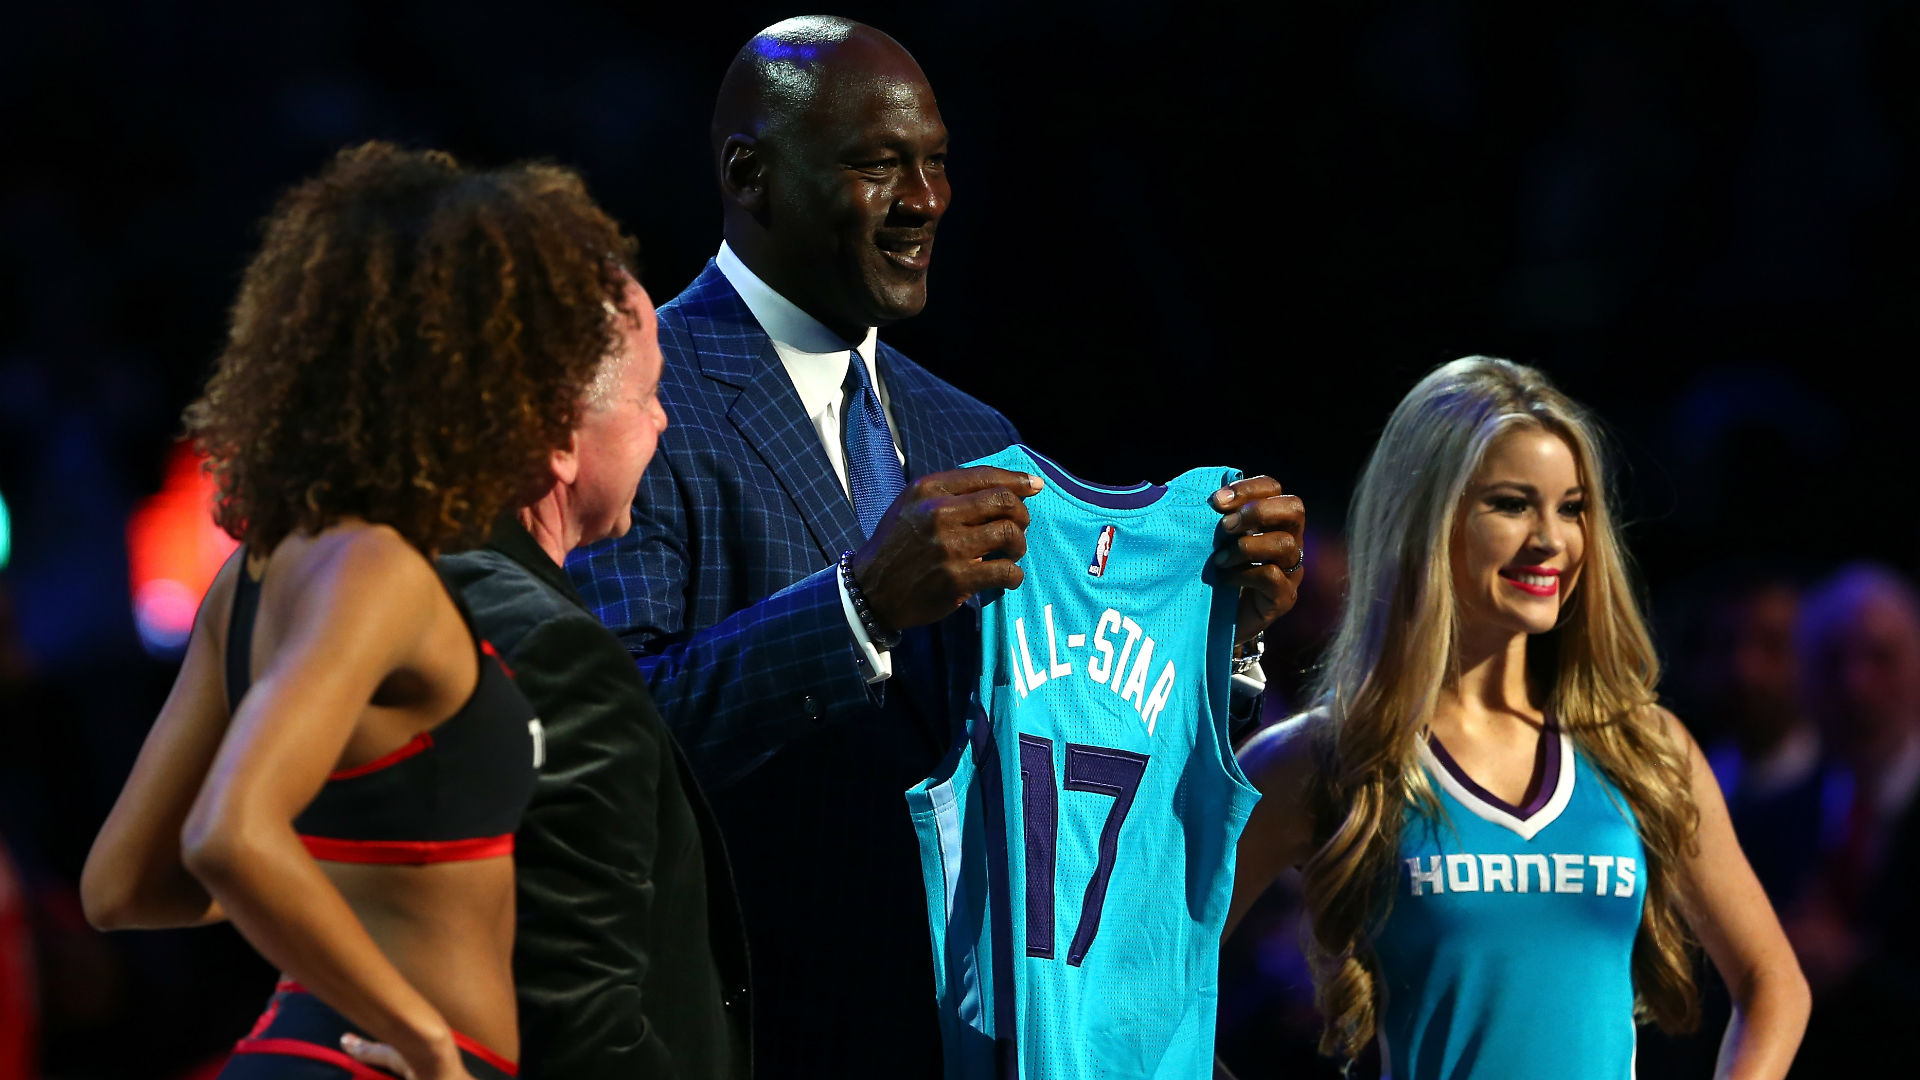 NBA all-star game to be held in Charlotte in 2019